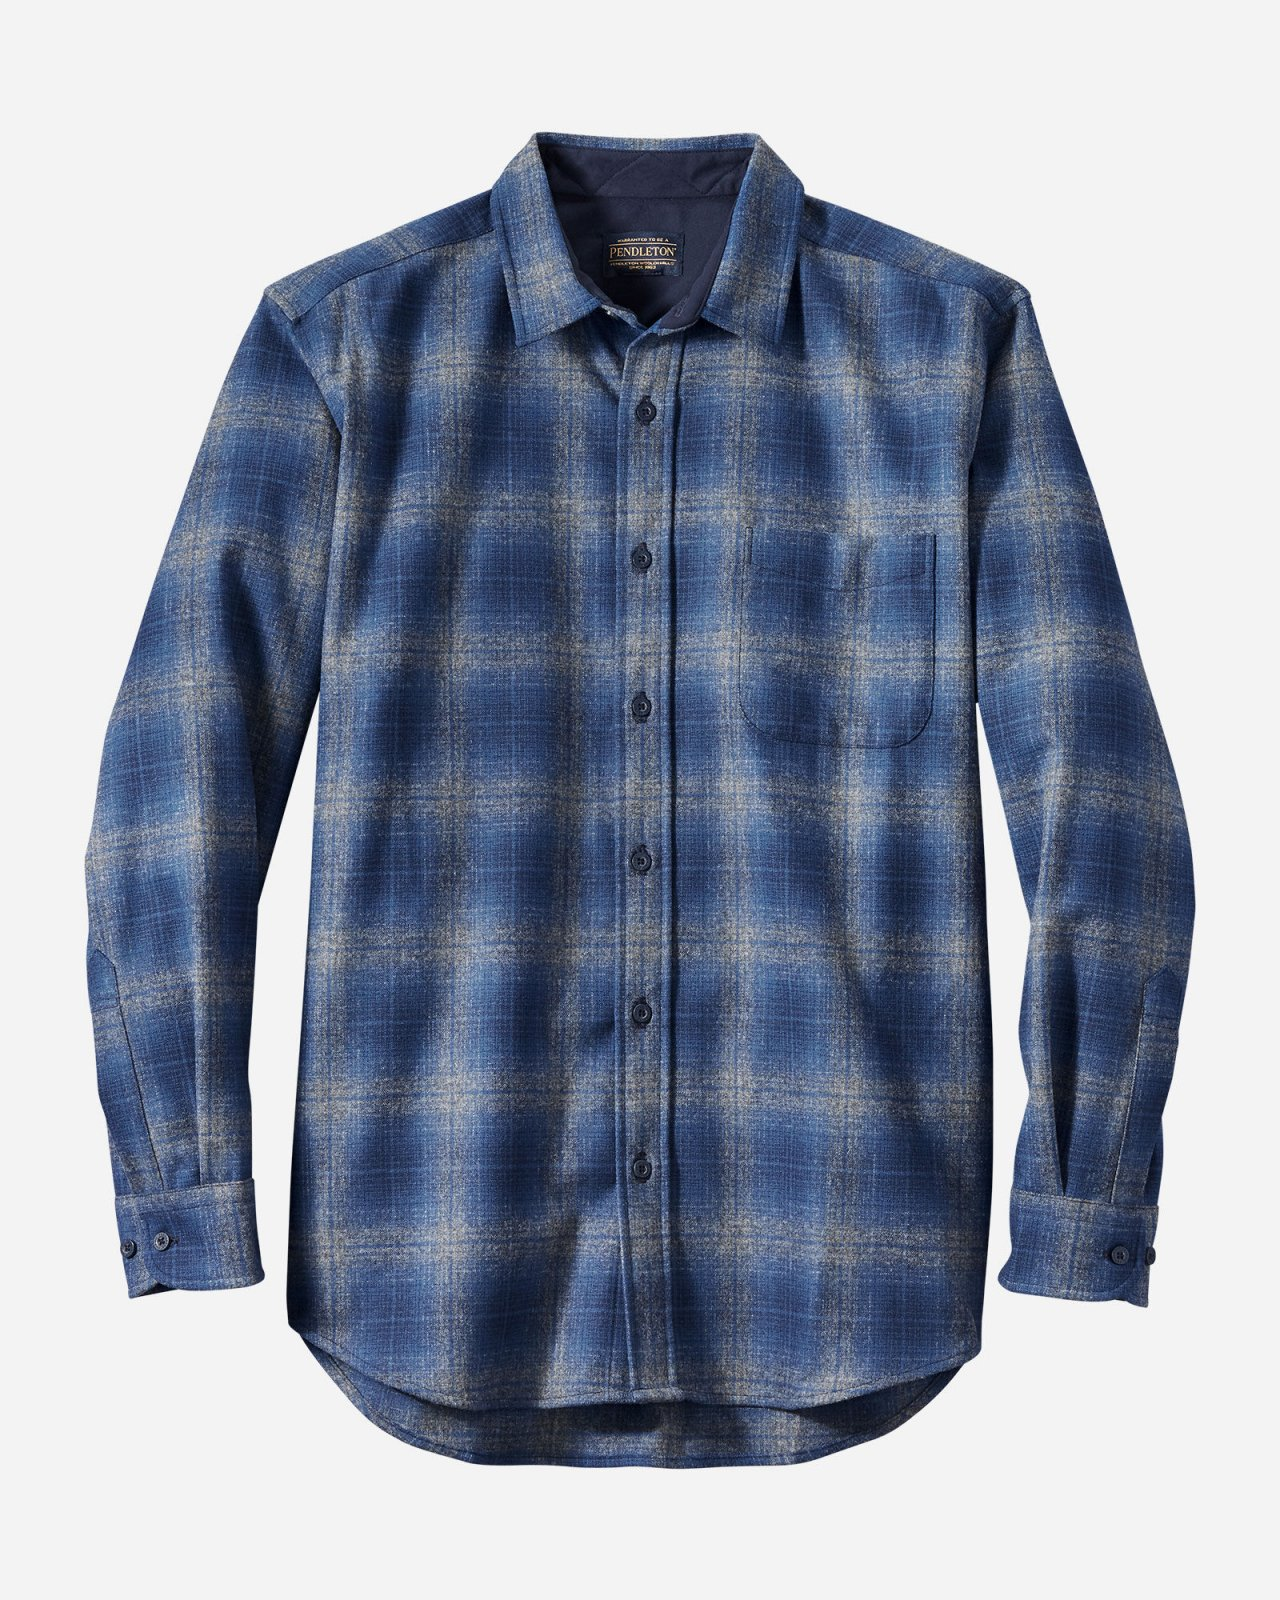 M's Pendleton Wool Lodge Shirt in Blue Plaid